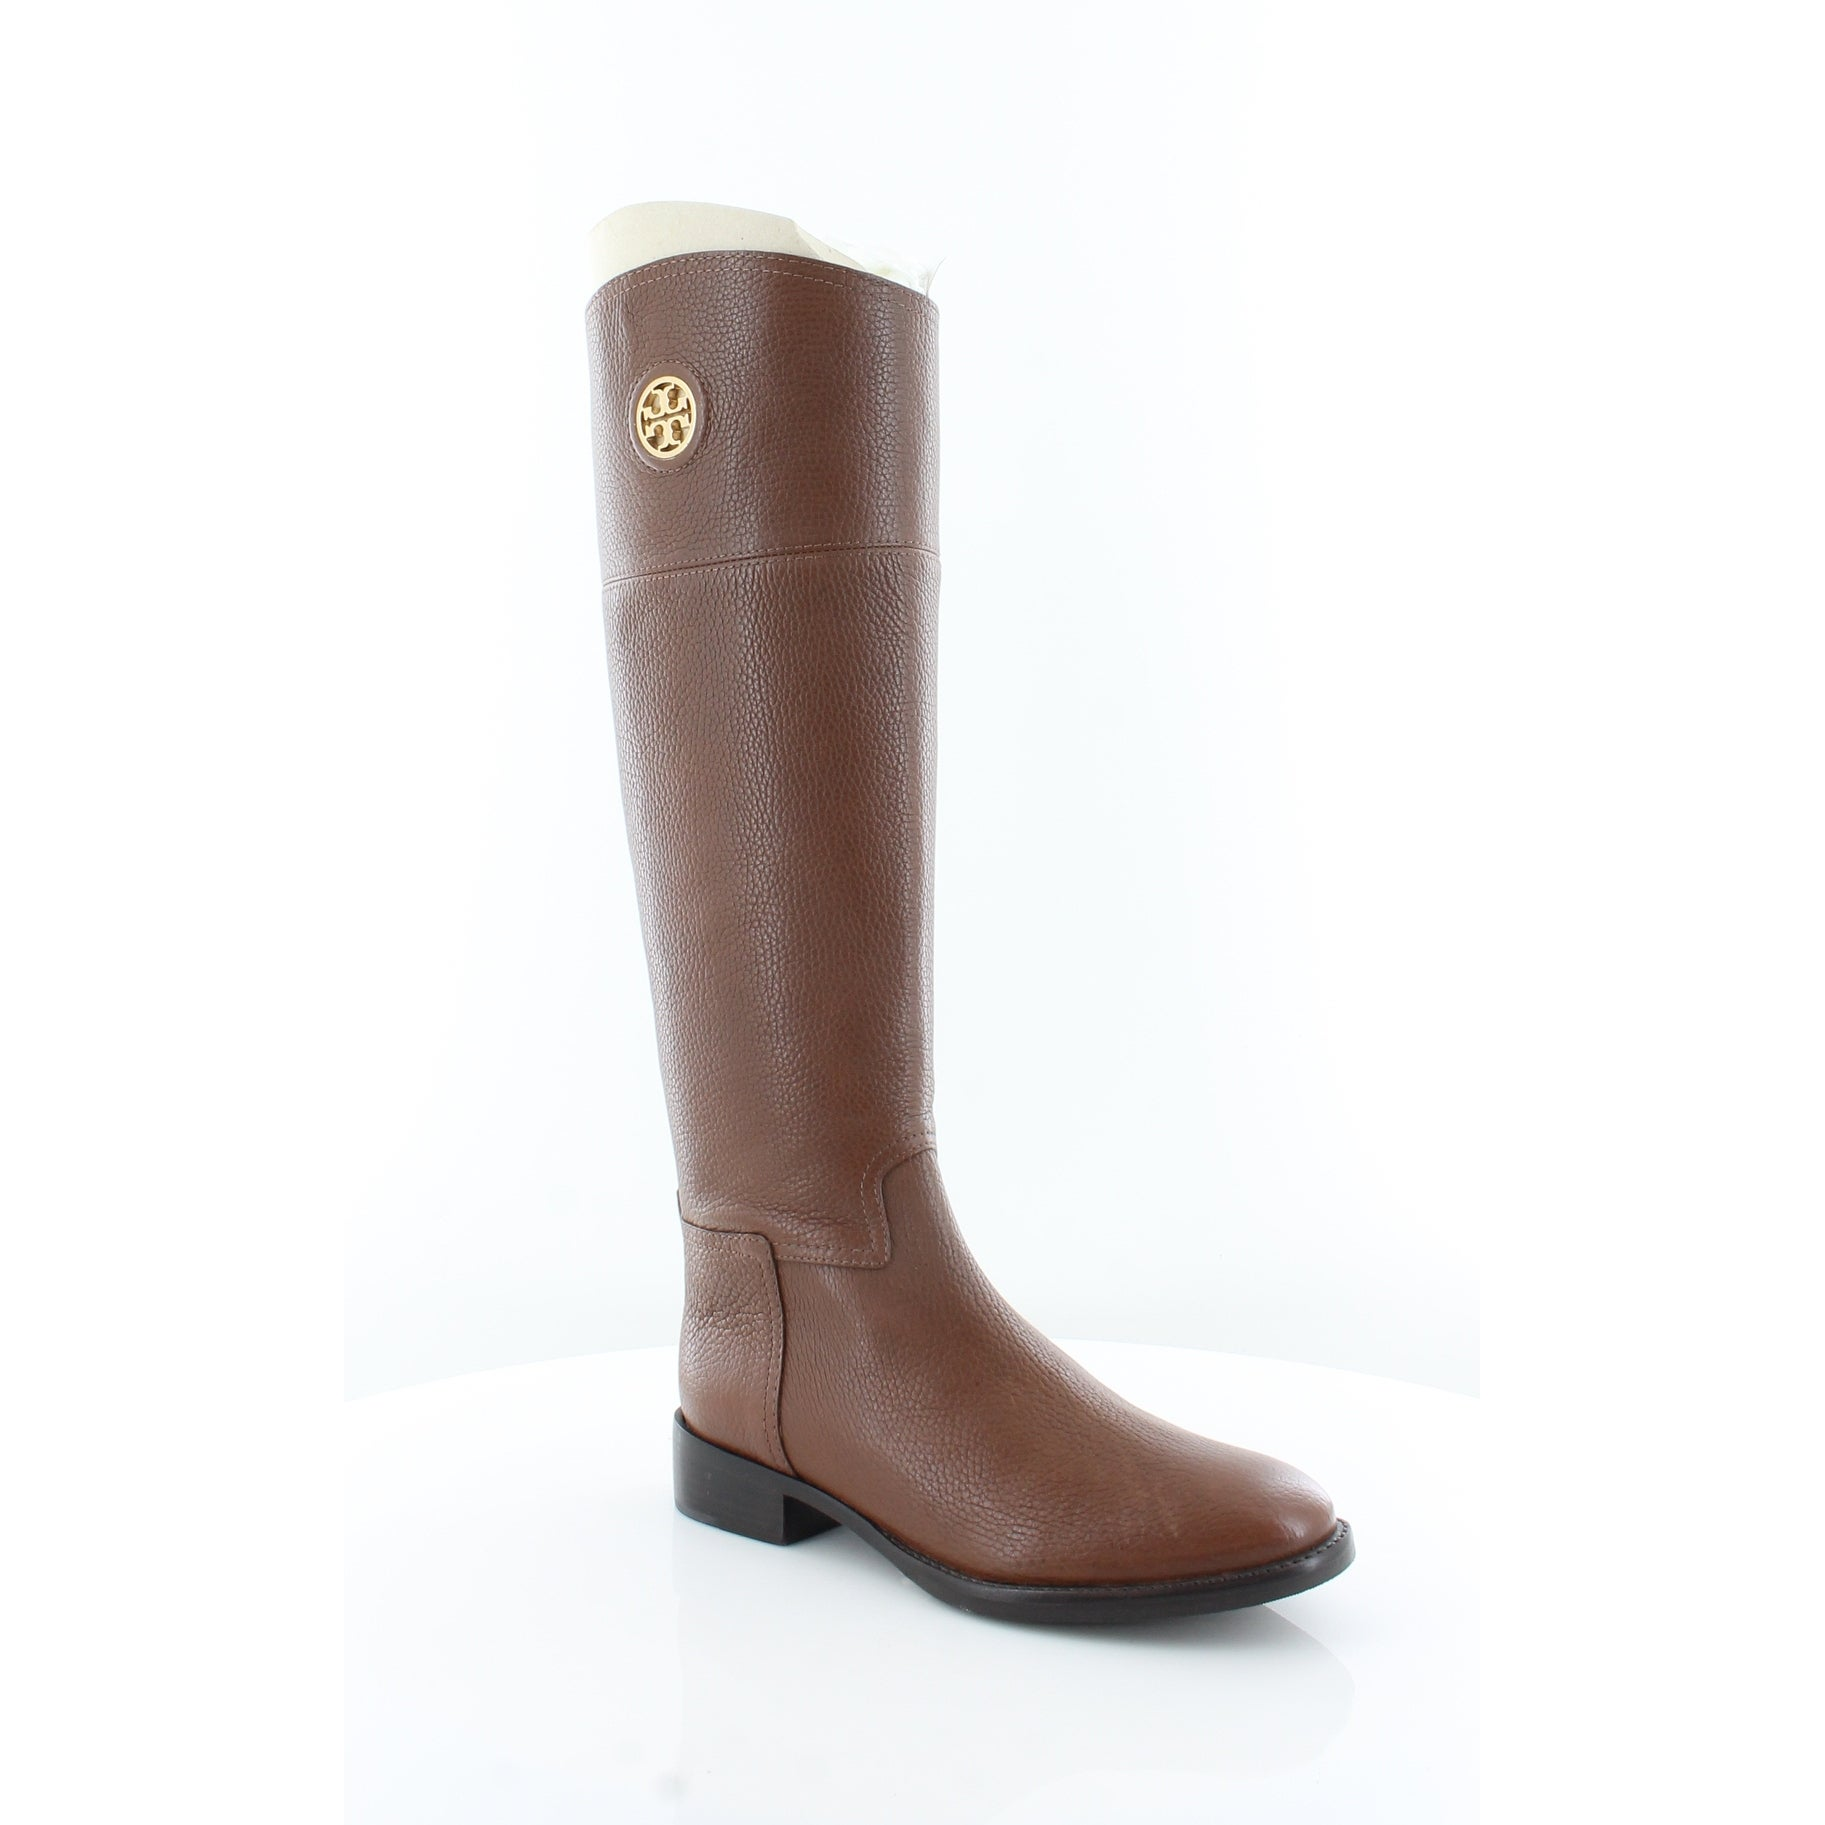 0dd3a2d581ab Shop Tory Burch Junction Riding Boot Women s Boots Almond - Free Shipping  Today - Overstock - 21550762